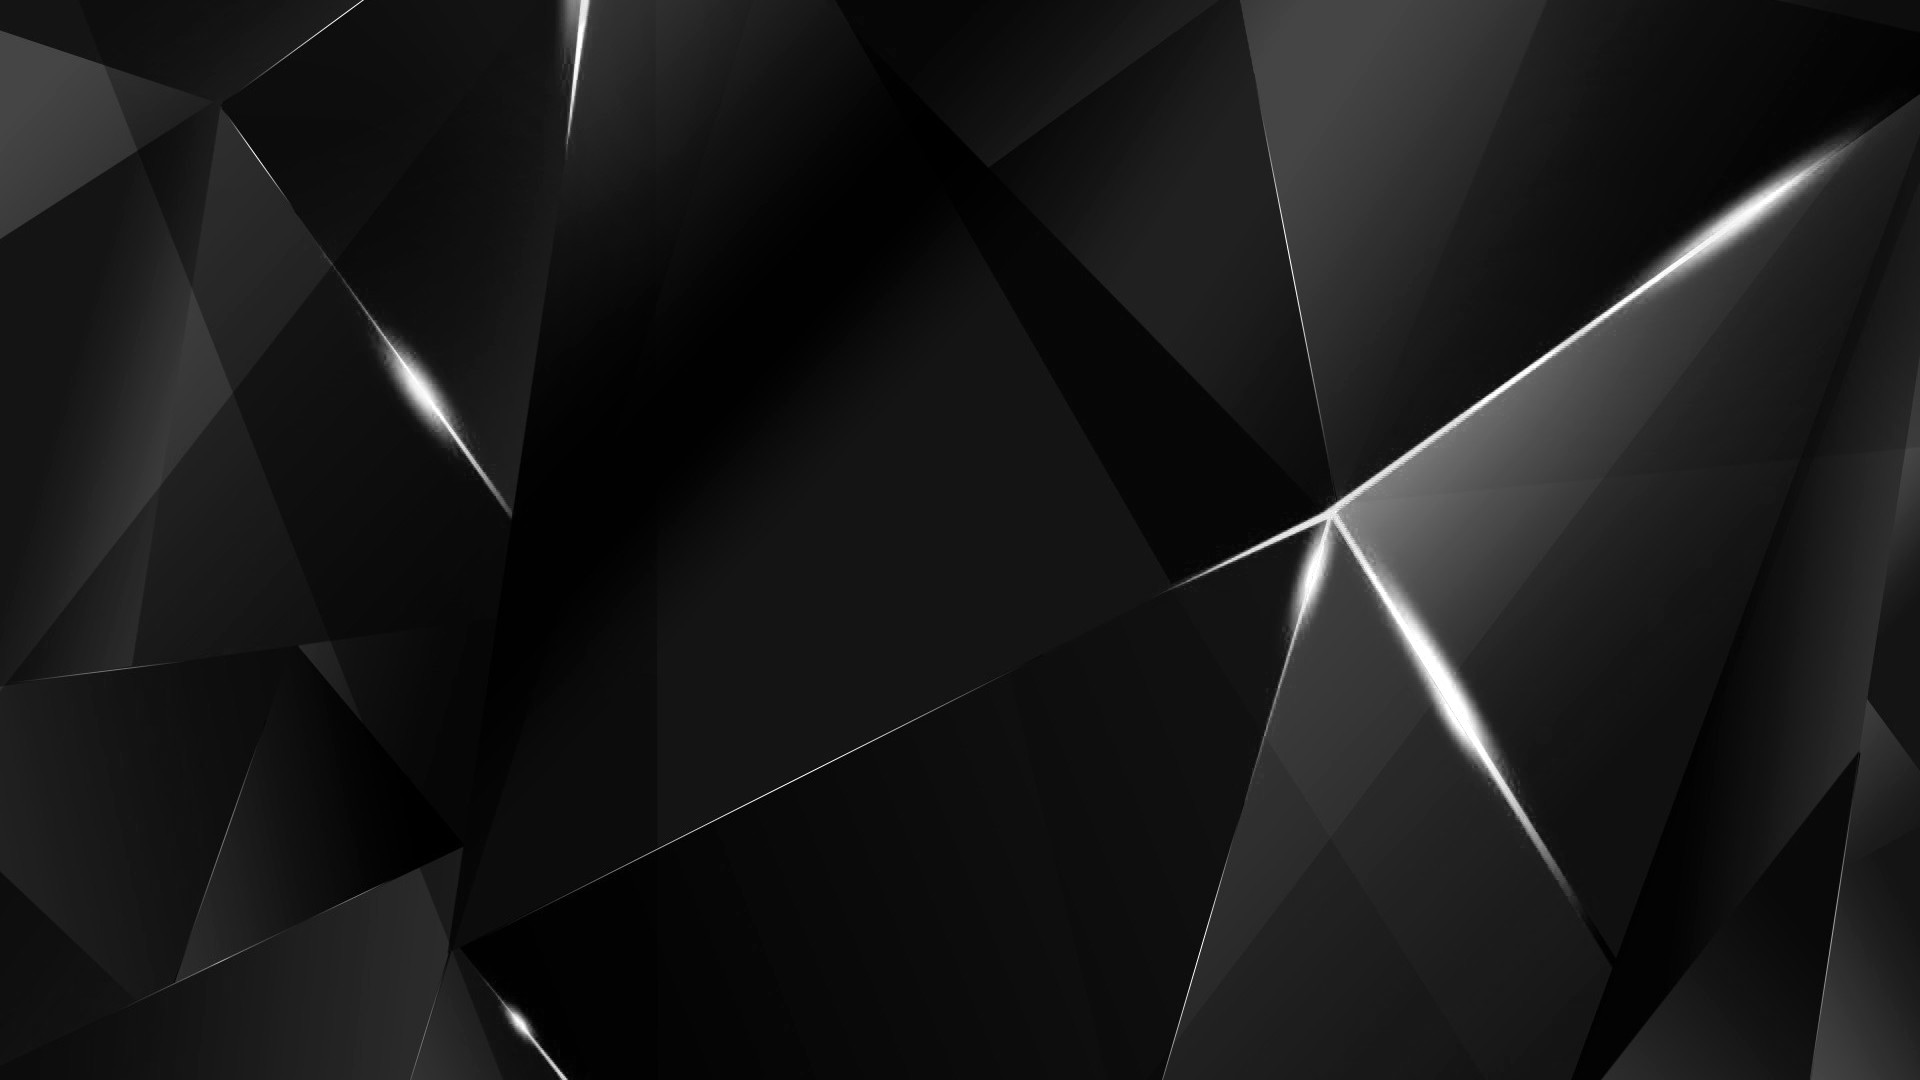 … Wallpapers – White Abstract Polygons (Black BG) by kaminohunter